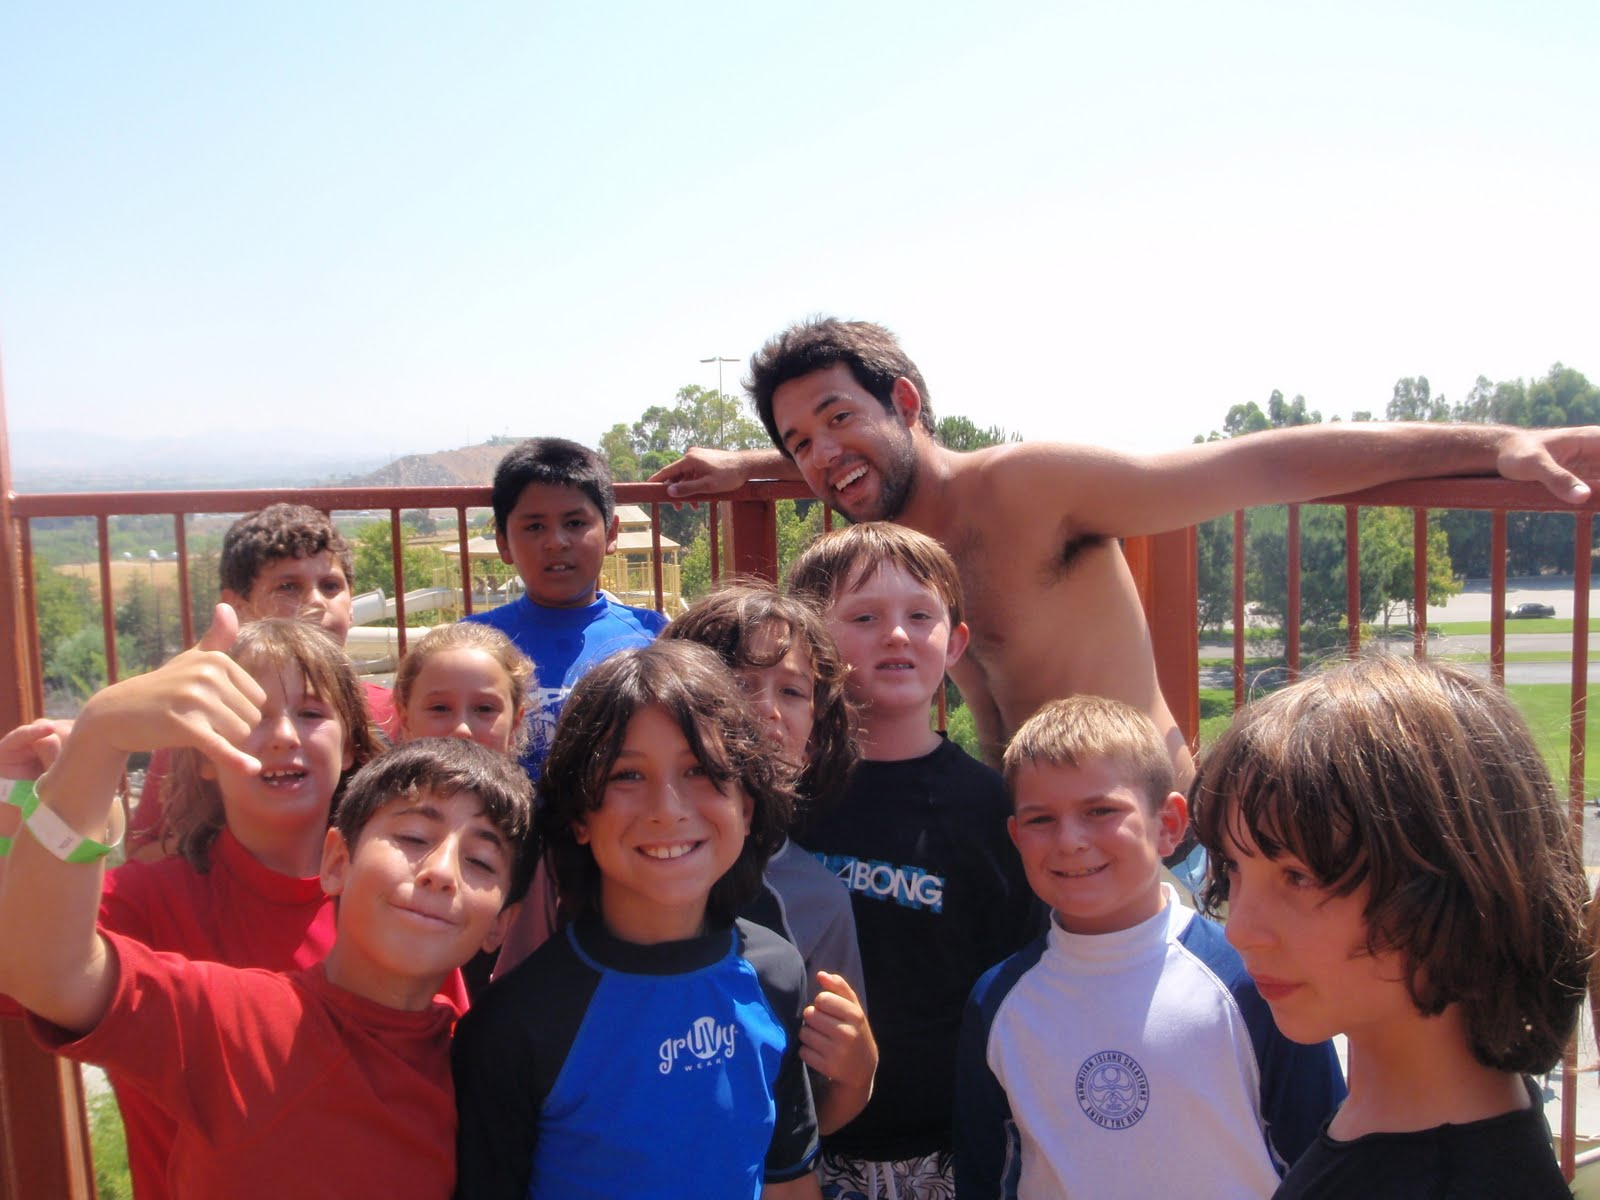 los angeles summer camp aloha beach camp blog  if you re looking for a summer camp counselor job in los angeles consider